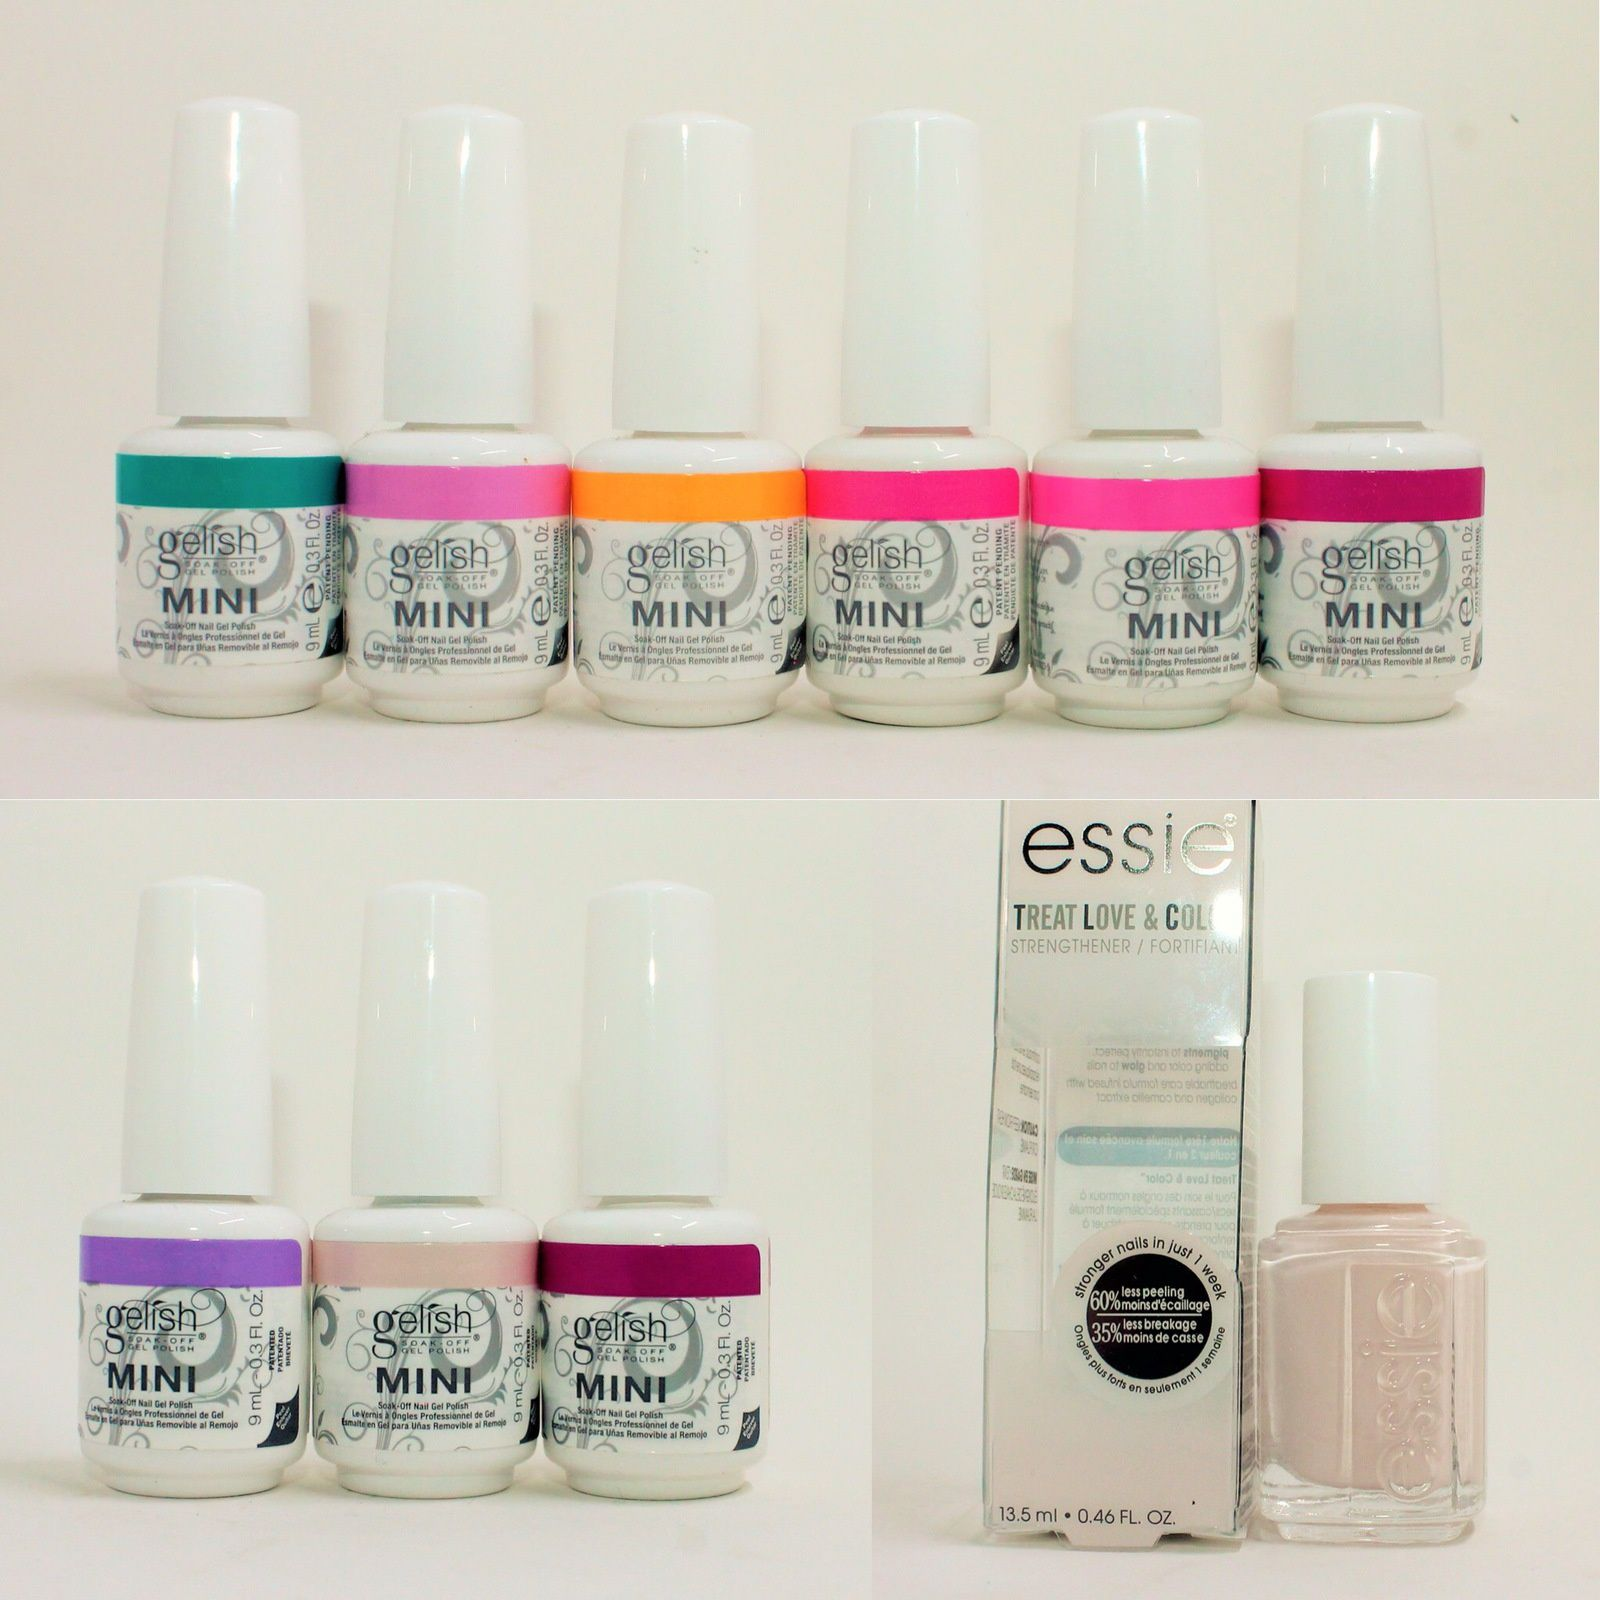 Gelish Mini Neon Street Beat  Collection & Royal Temptations trio. Essie Treat Love & Color In a Blush.